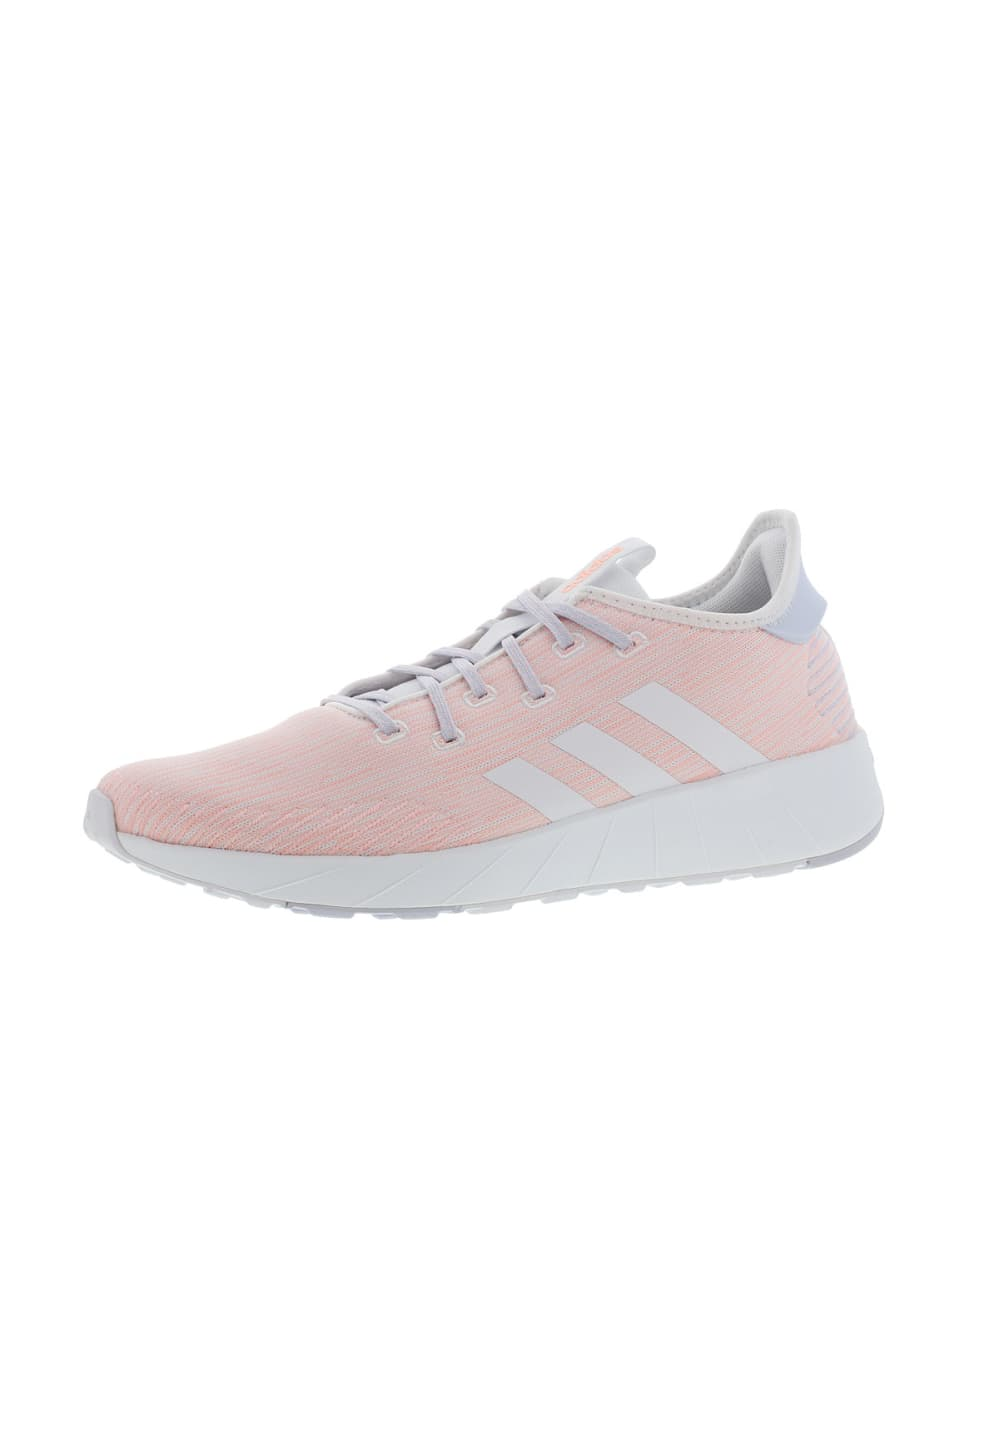 promo code 71f1c 378ee Next. -60%. adidas neo. Questar X BYD - Chaussures ...